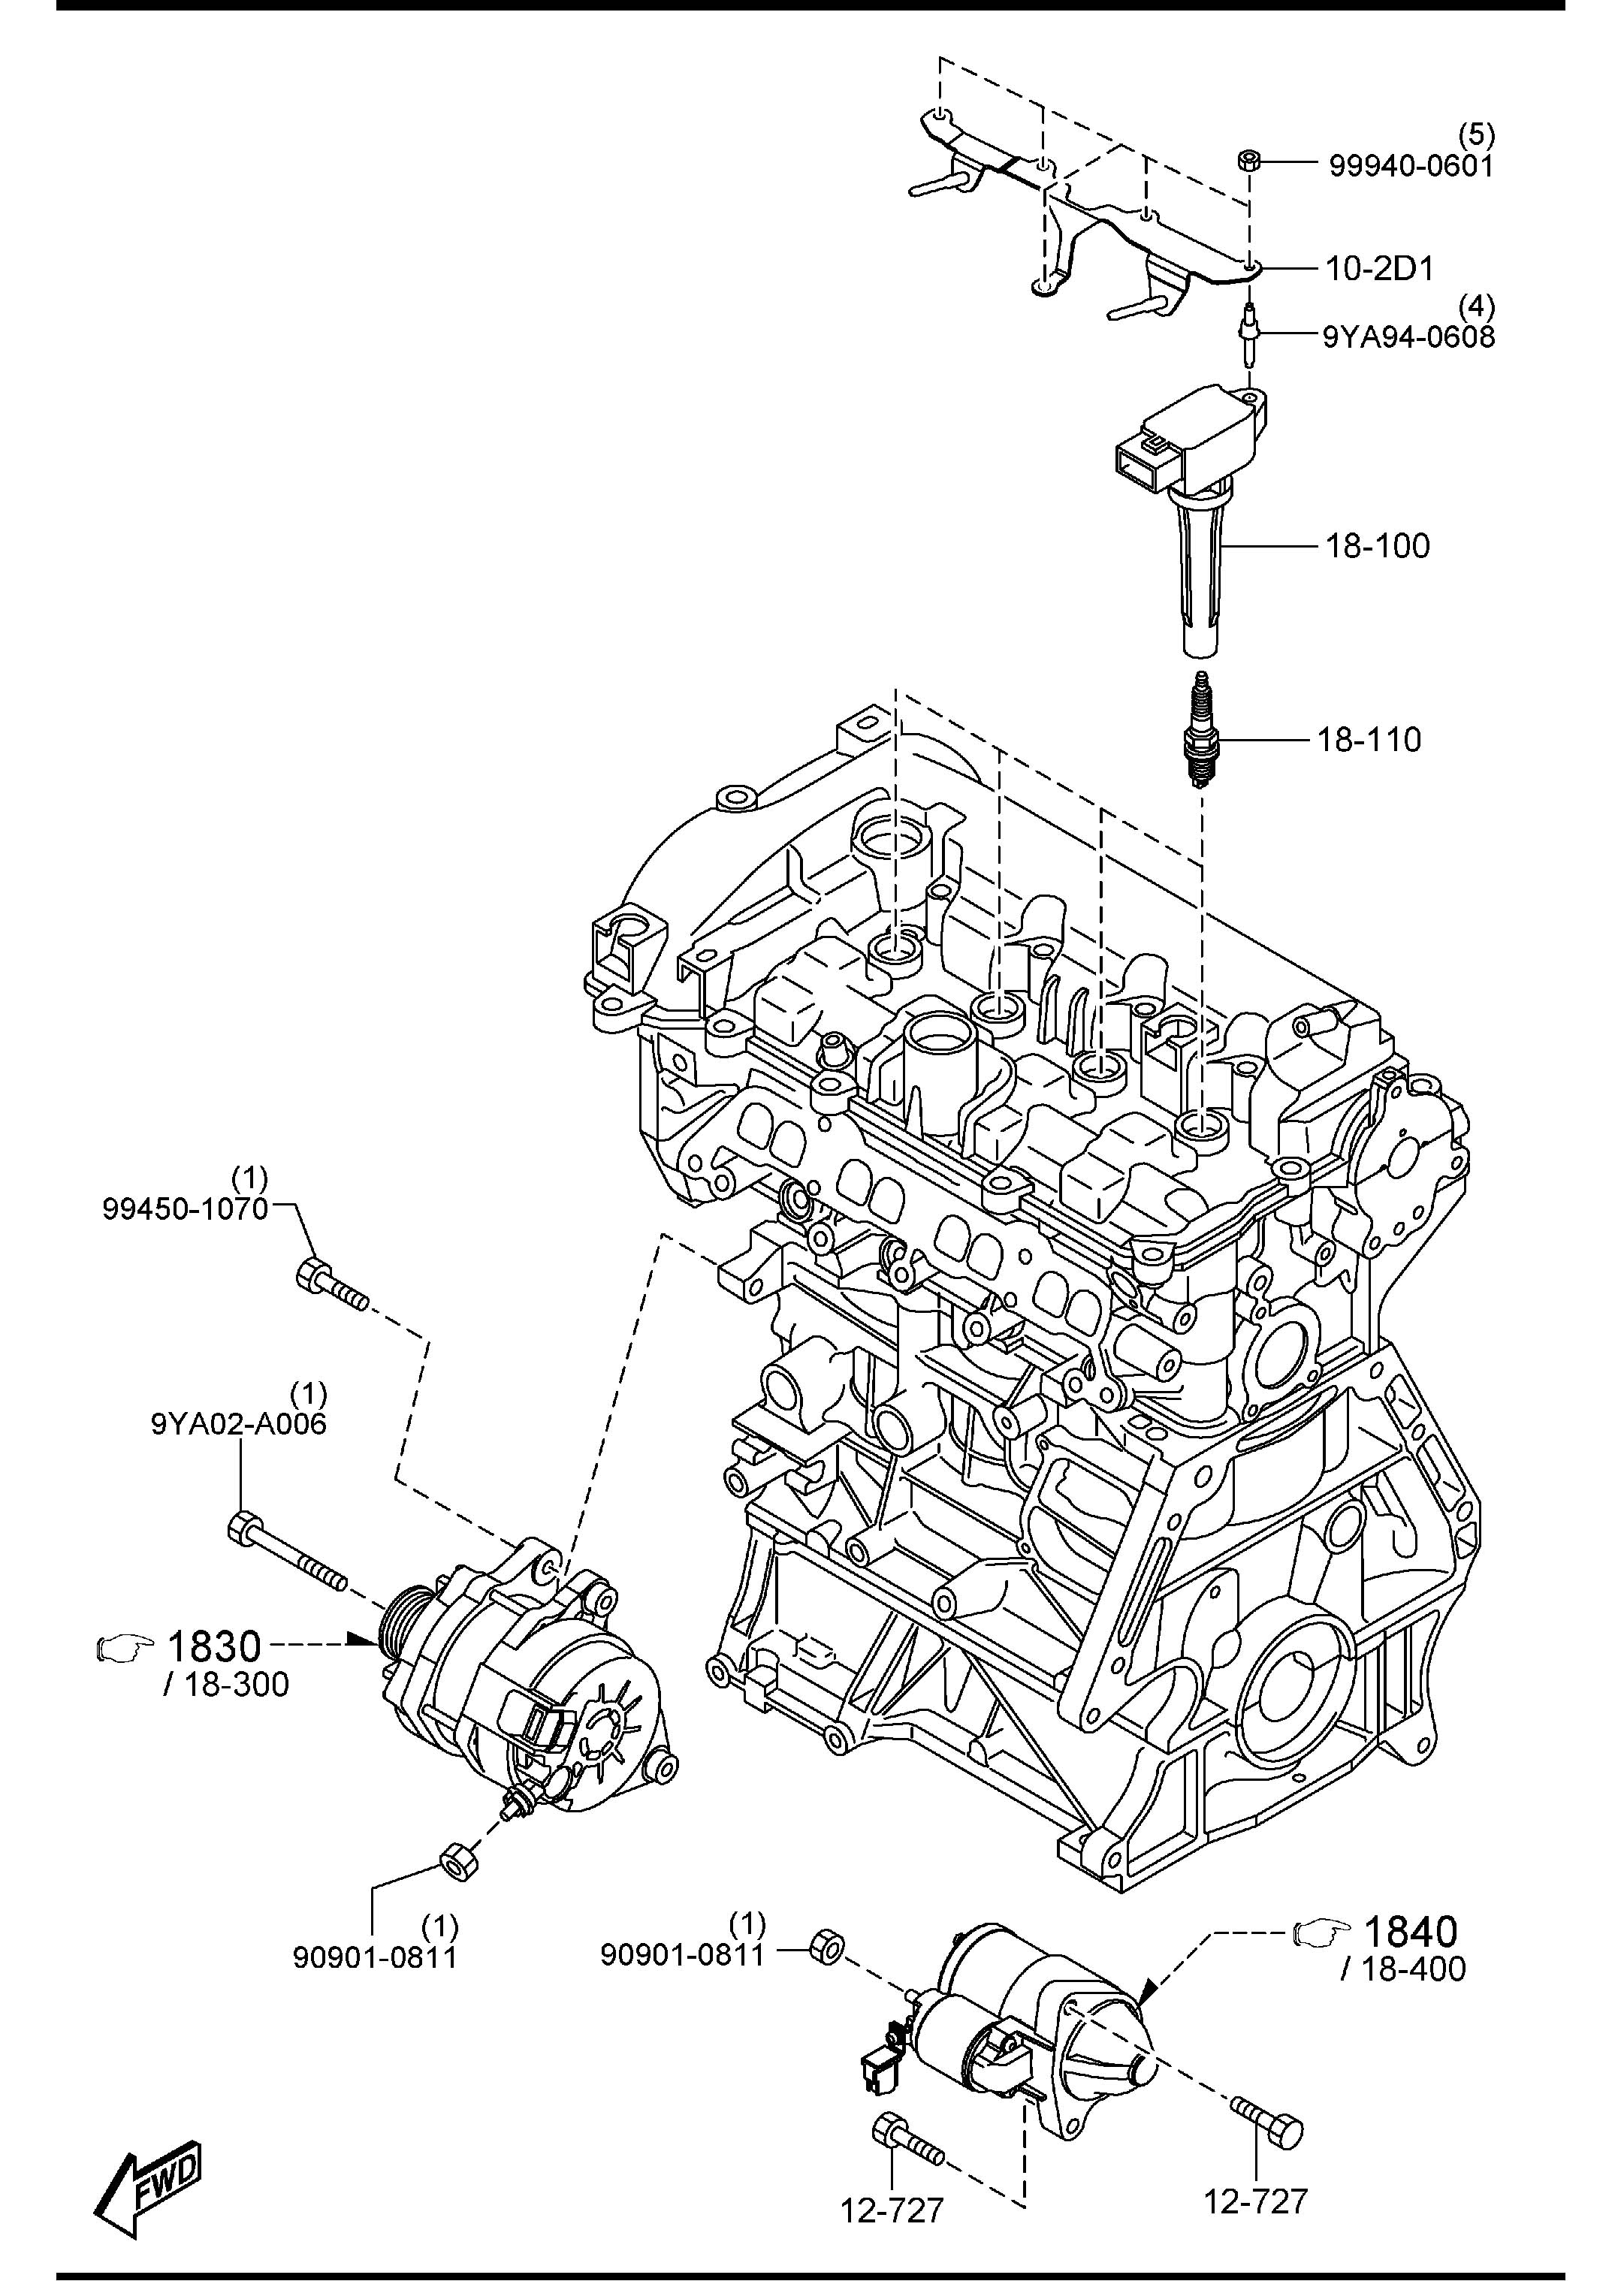 Engine Electrical System : Mazda engine electrical system cc speed